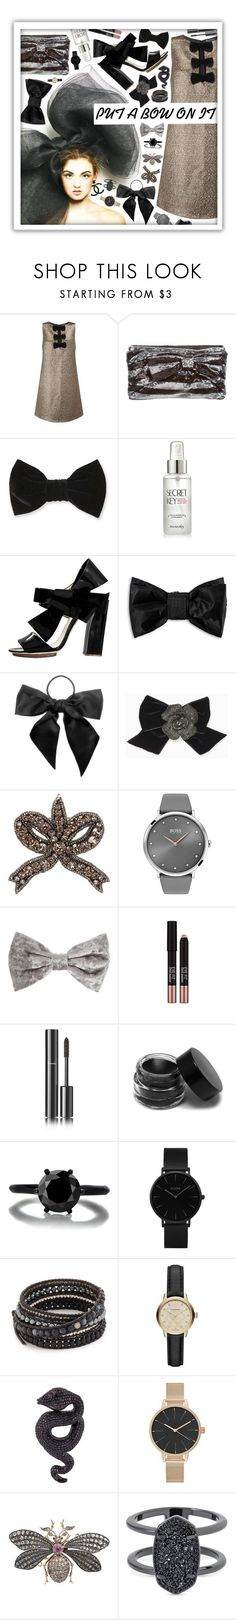 """Put a bow on it!"" by beanpod ❤ liked on Polyvore featuring Miss Selfridge, Kate Spade, Forever 21, SkinCare, Delpozo, Puma, L. Erickson, Gucci, BOSS Black and Missha"